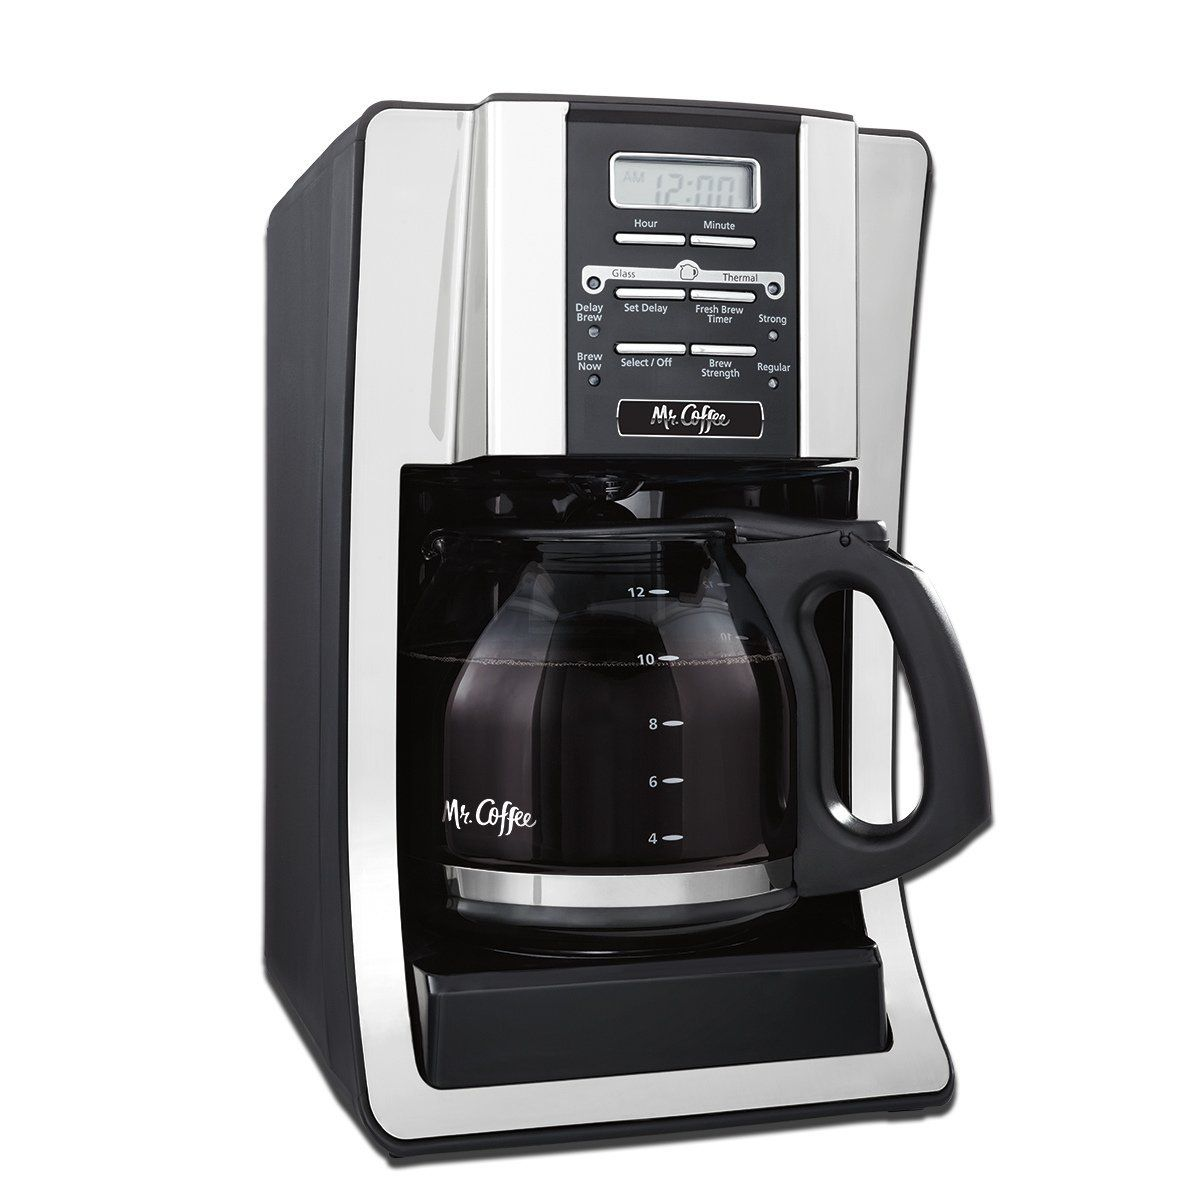 Mr Coffee BVMC SJX33GT AM 12 Cup Programmable Coffee Maker with